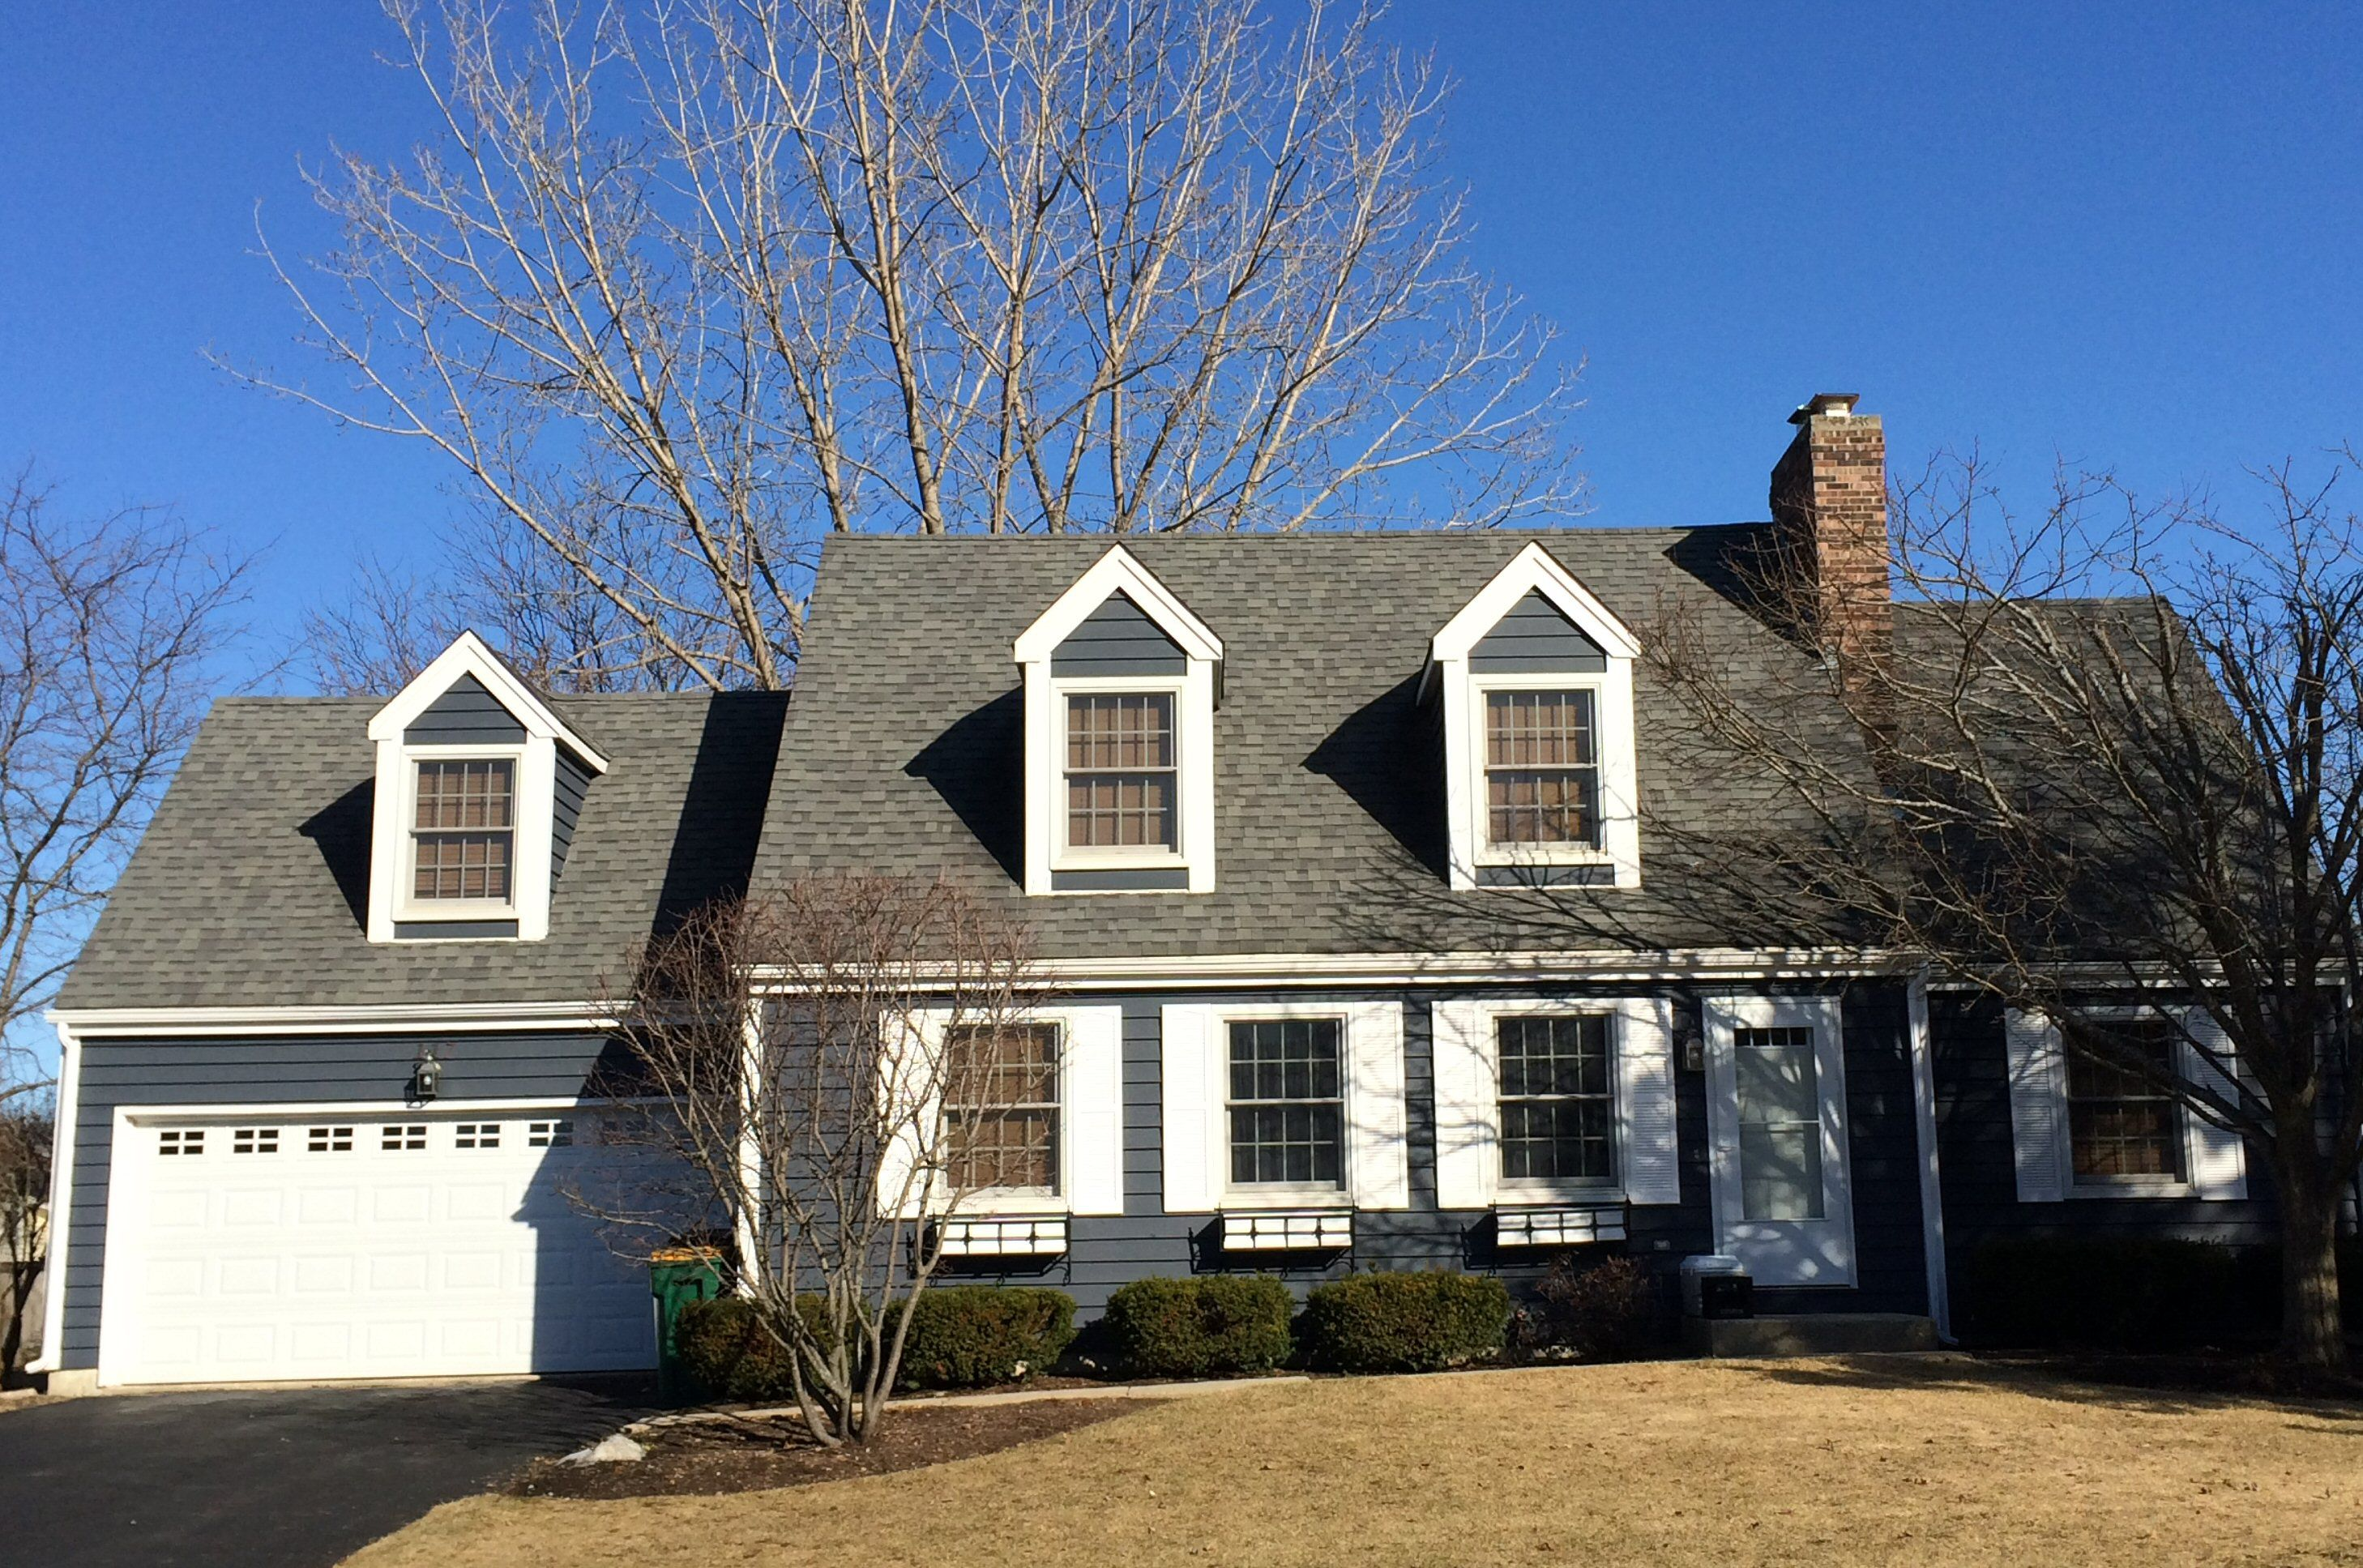 Cape cod style house with two dormers on the house and one over the garage door